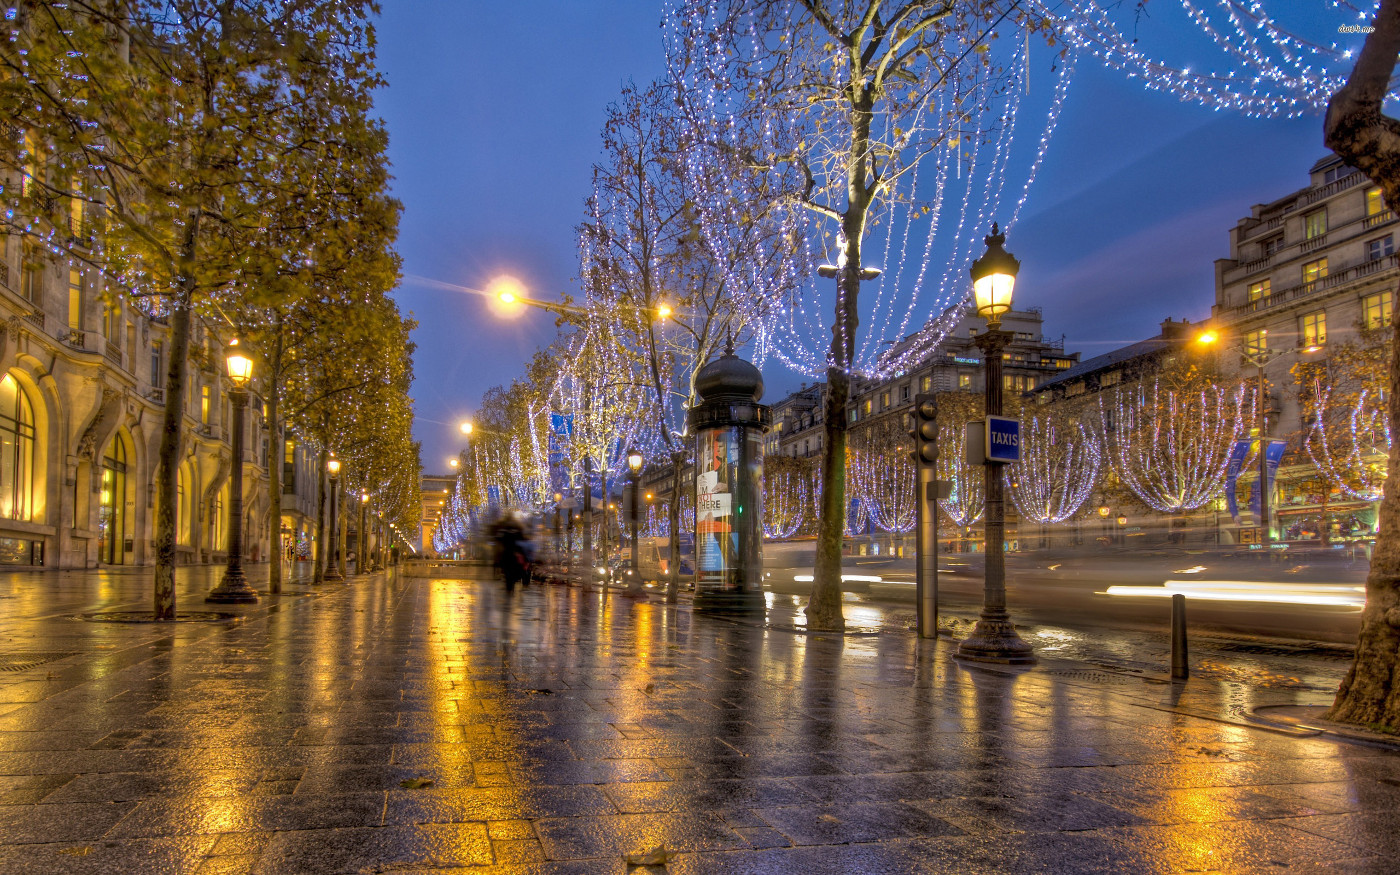 paris background with colorful lights